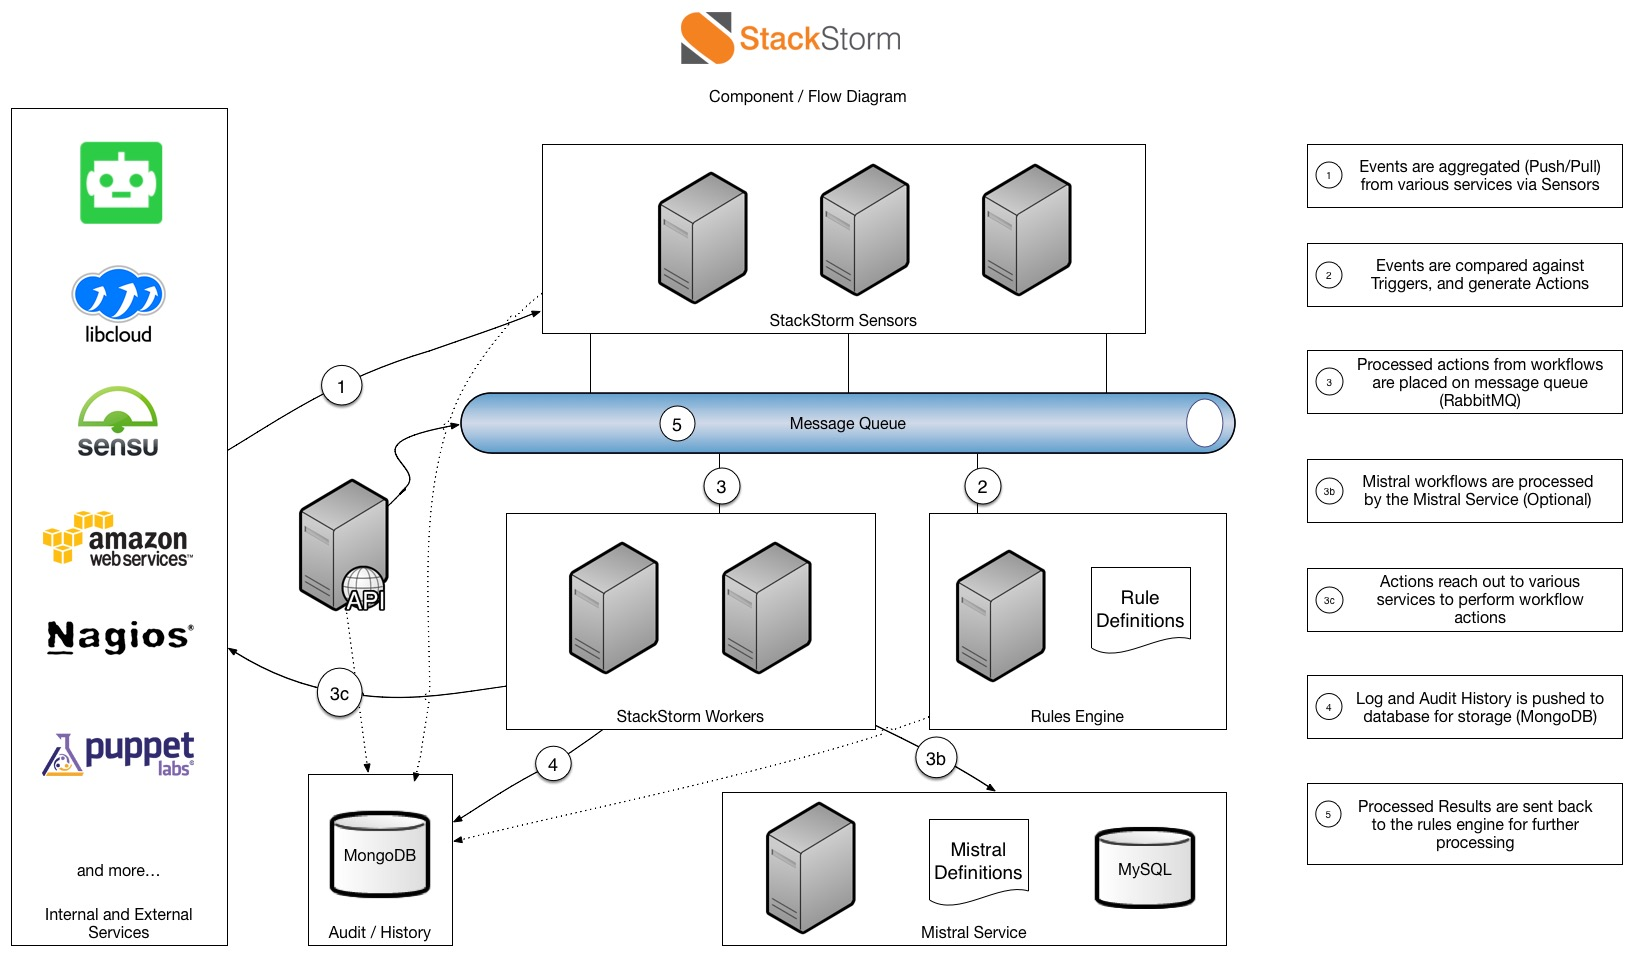 StackStorm v3.3 releases: auto-remediation, security responses, troubleshooting, deployments